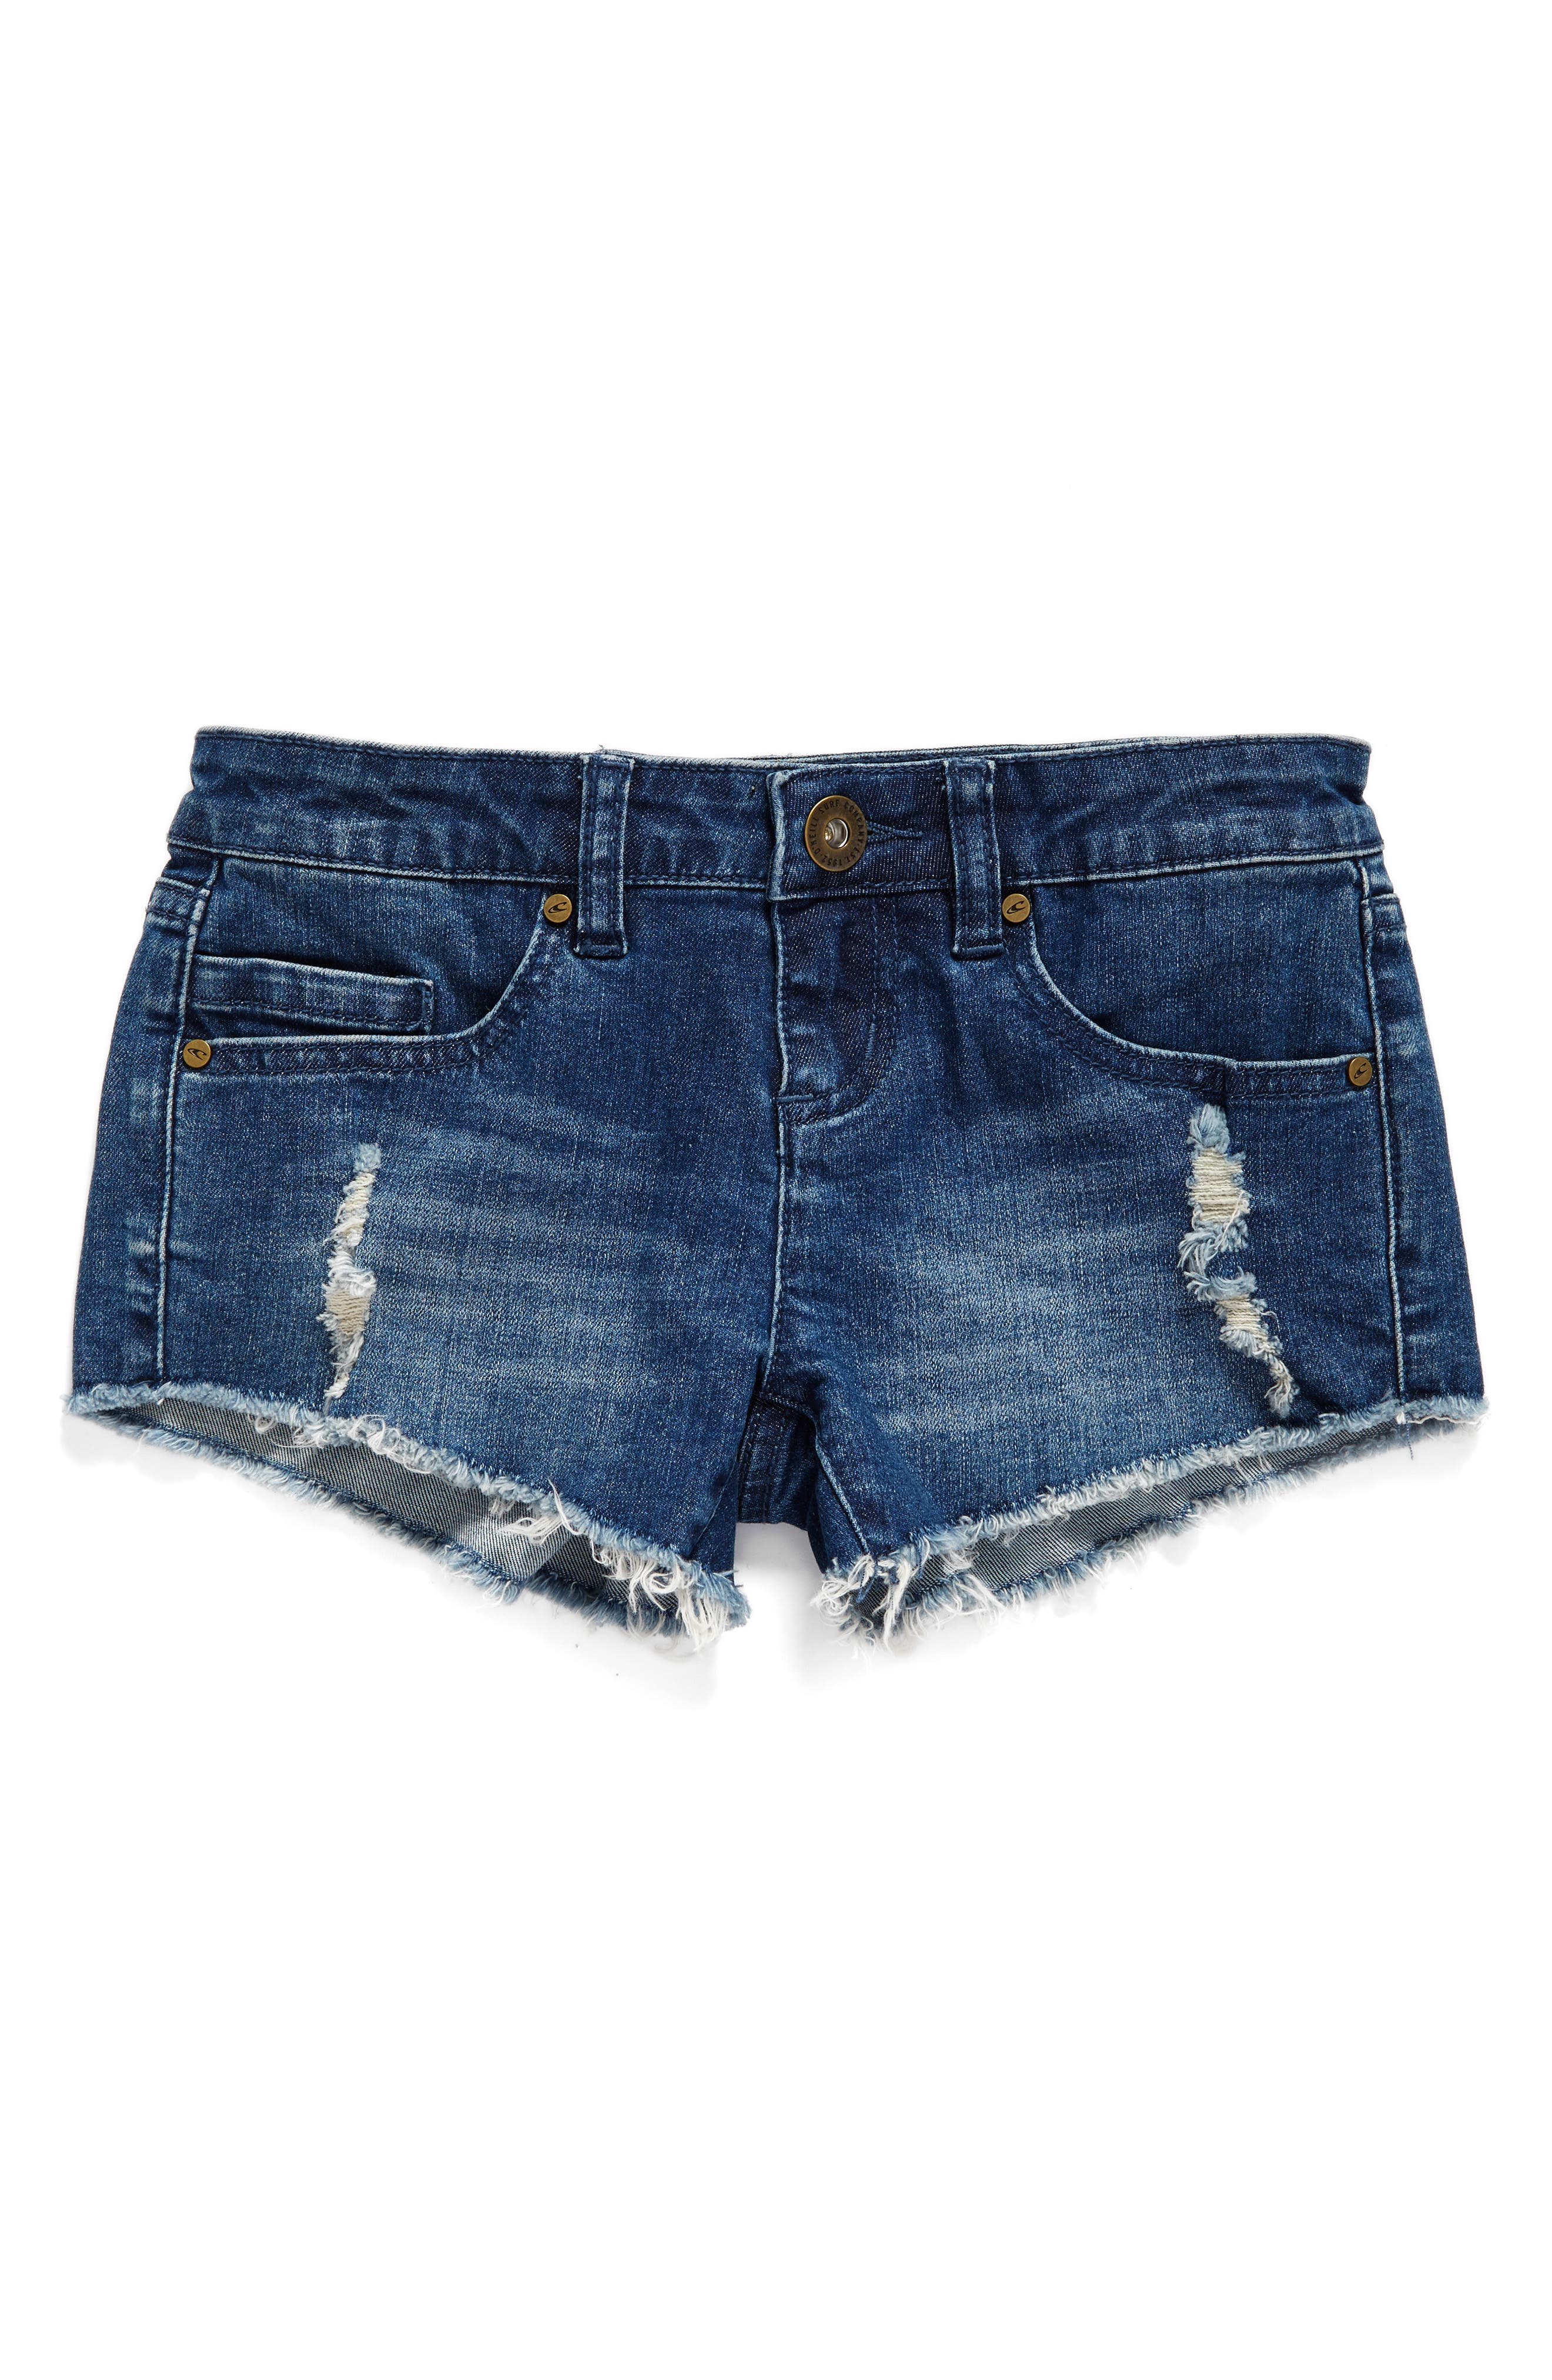 O'NEILL Camper Denim Shorts